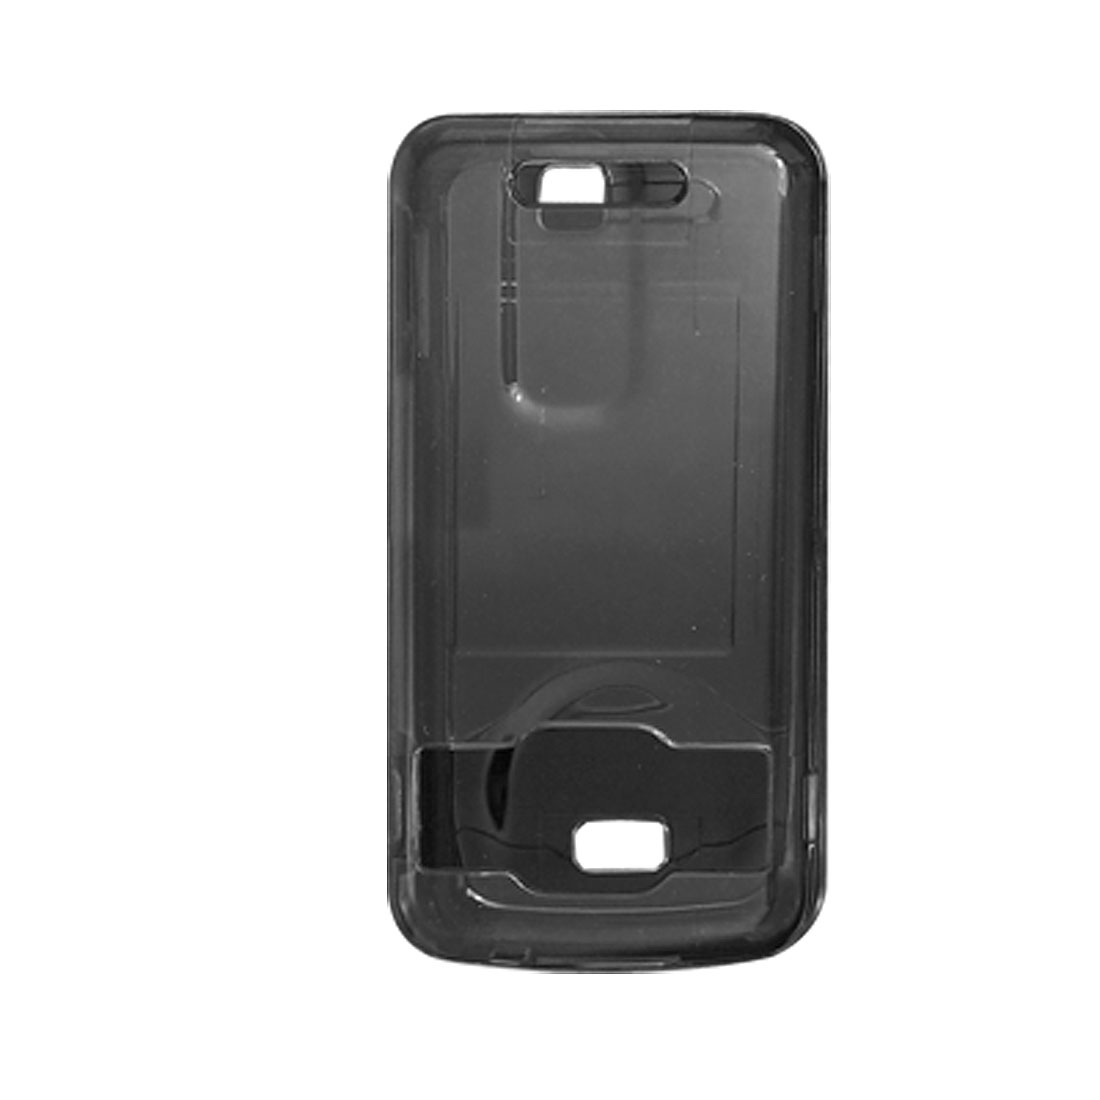 Hard Plastic Phone Case Cover Shell for Nokia 7100 Clear